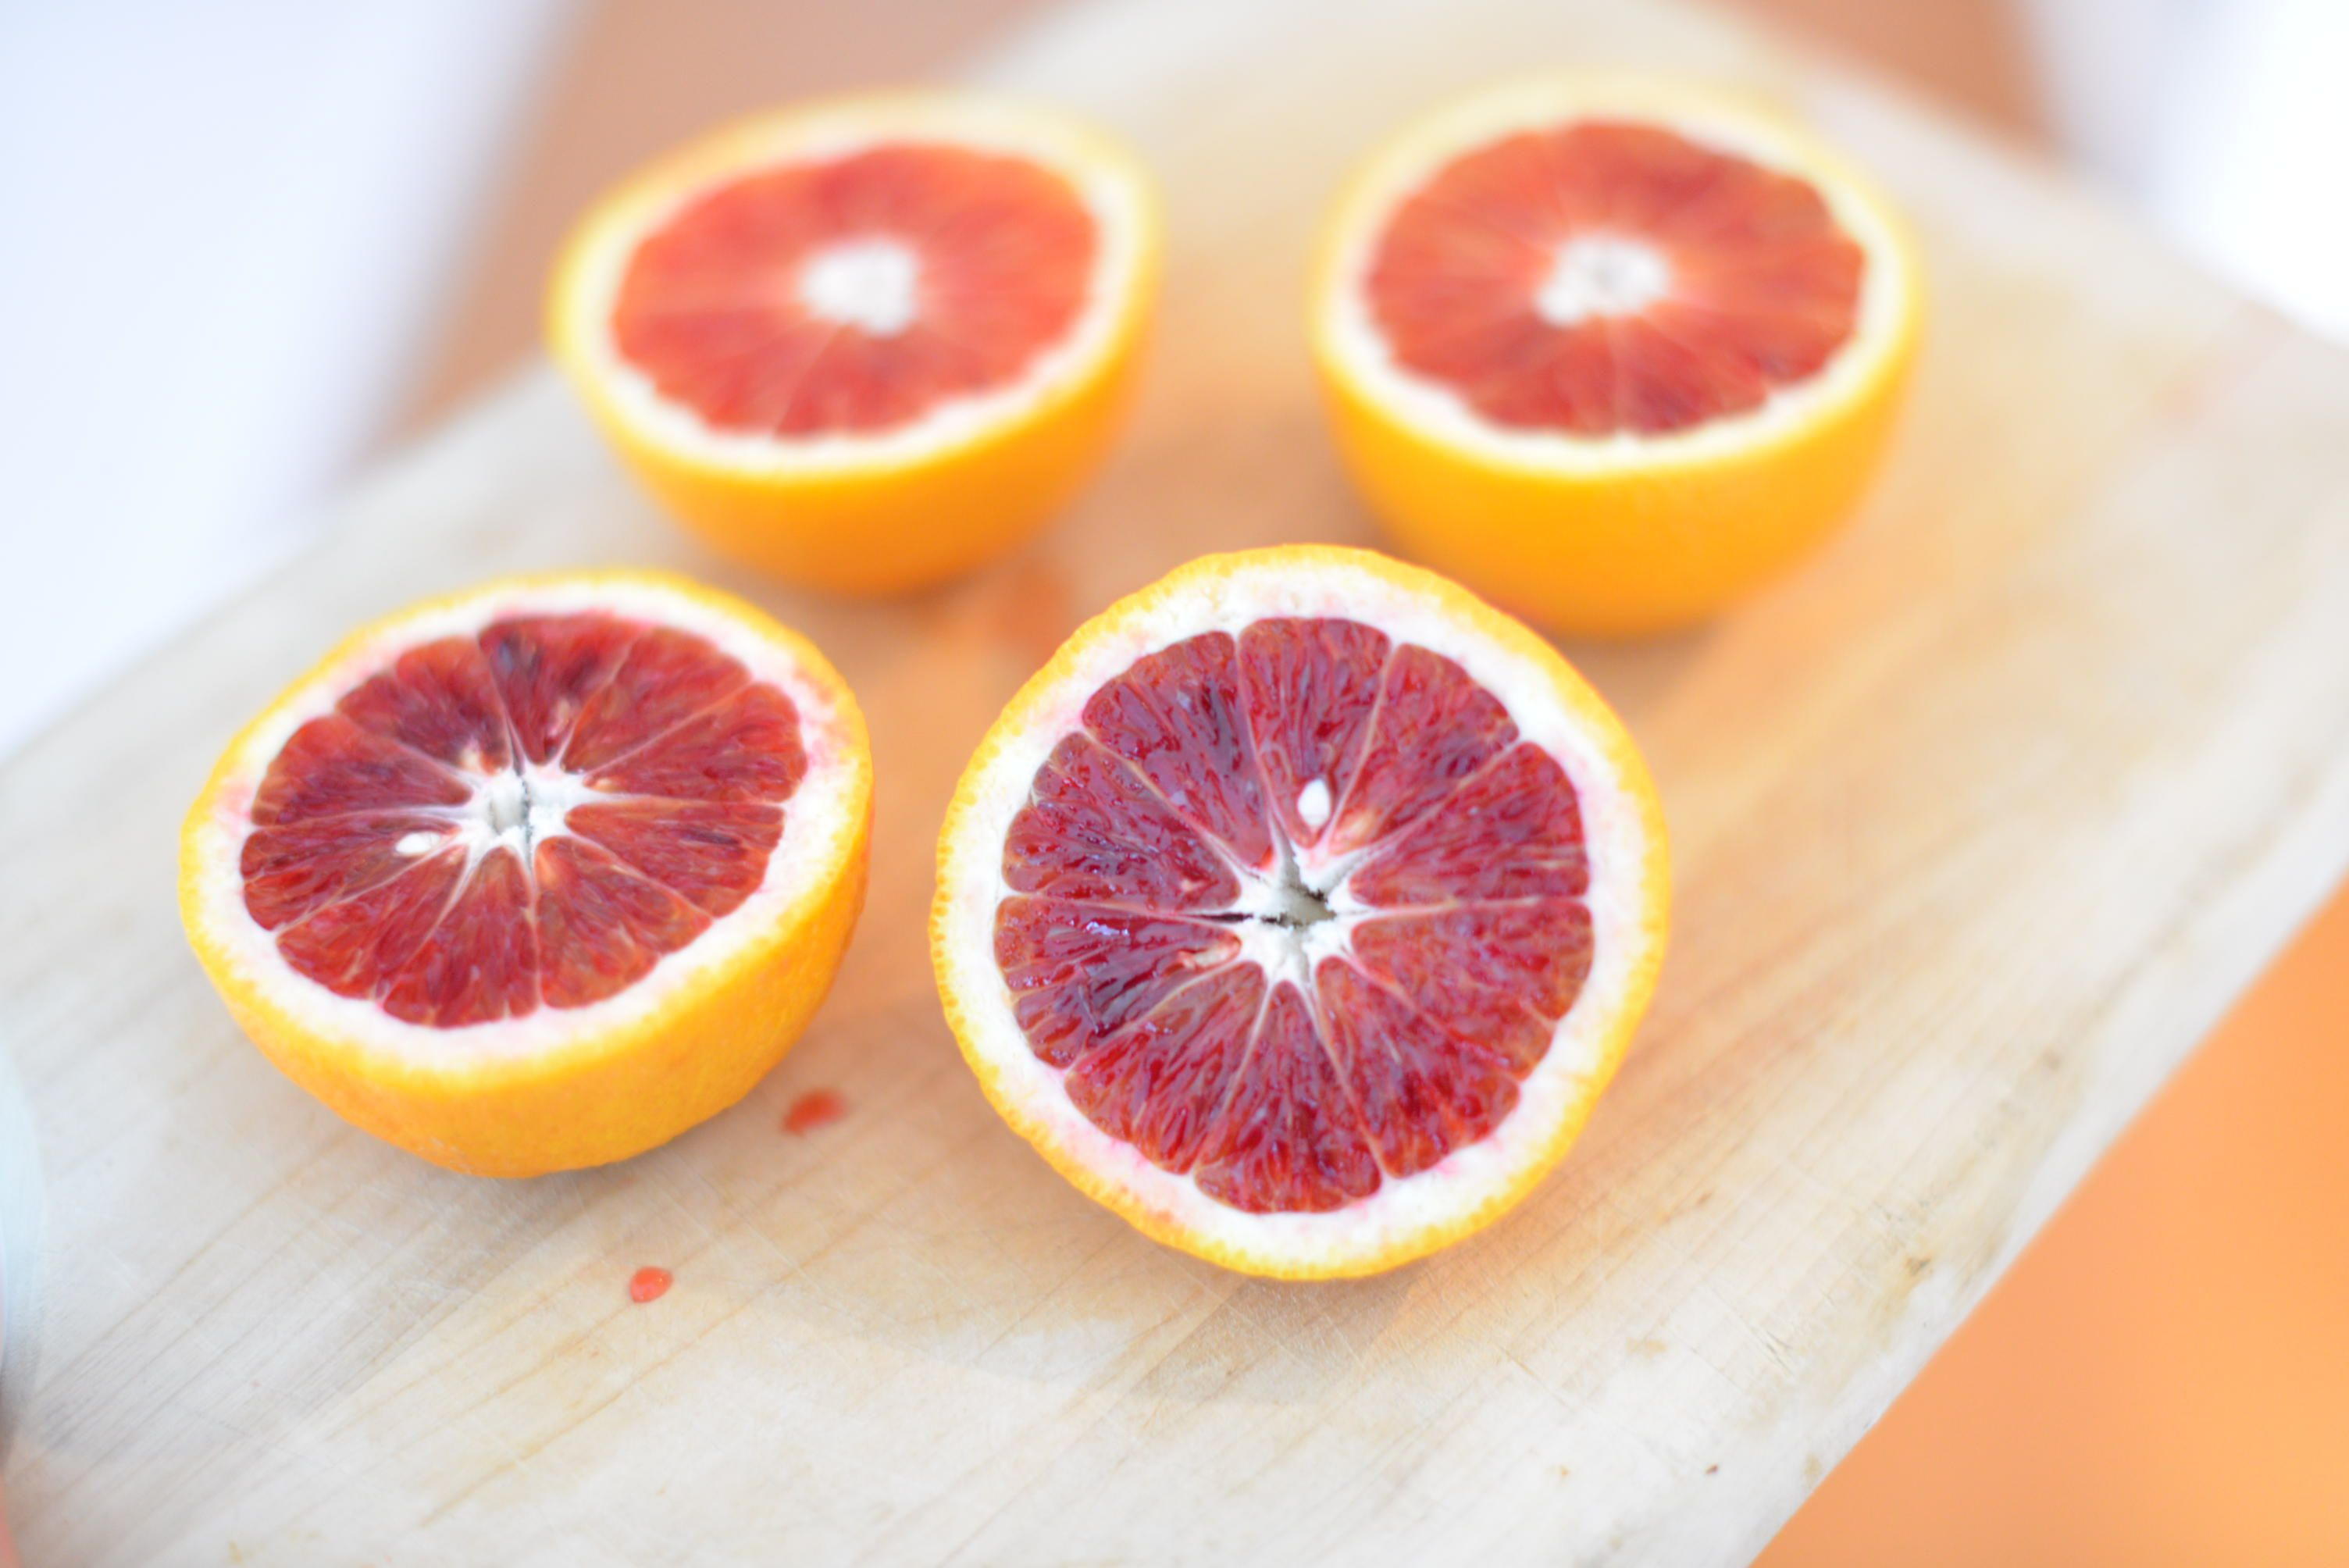 Blood Oranges by Athlete Food #athletefood